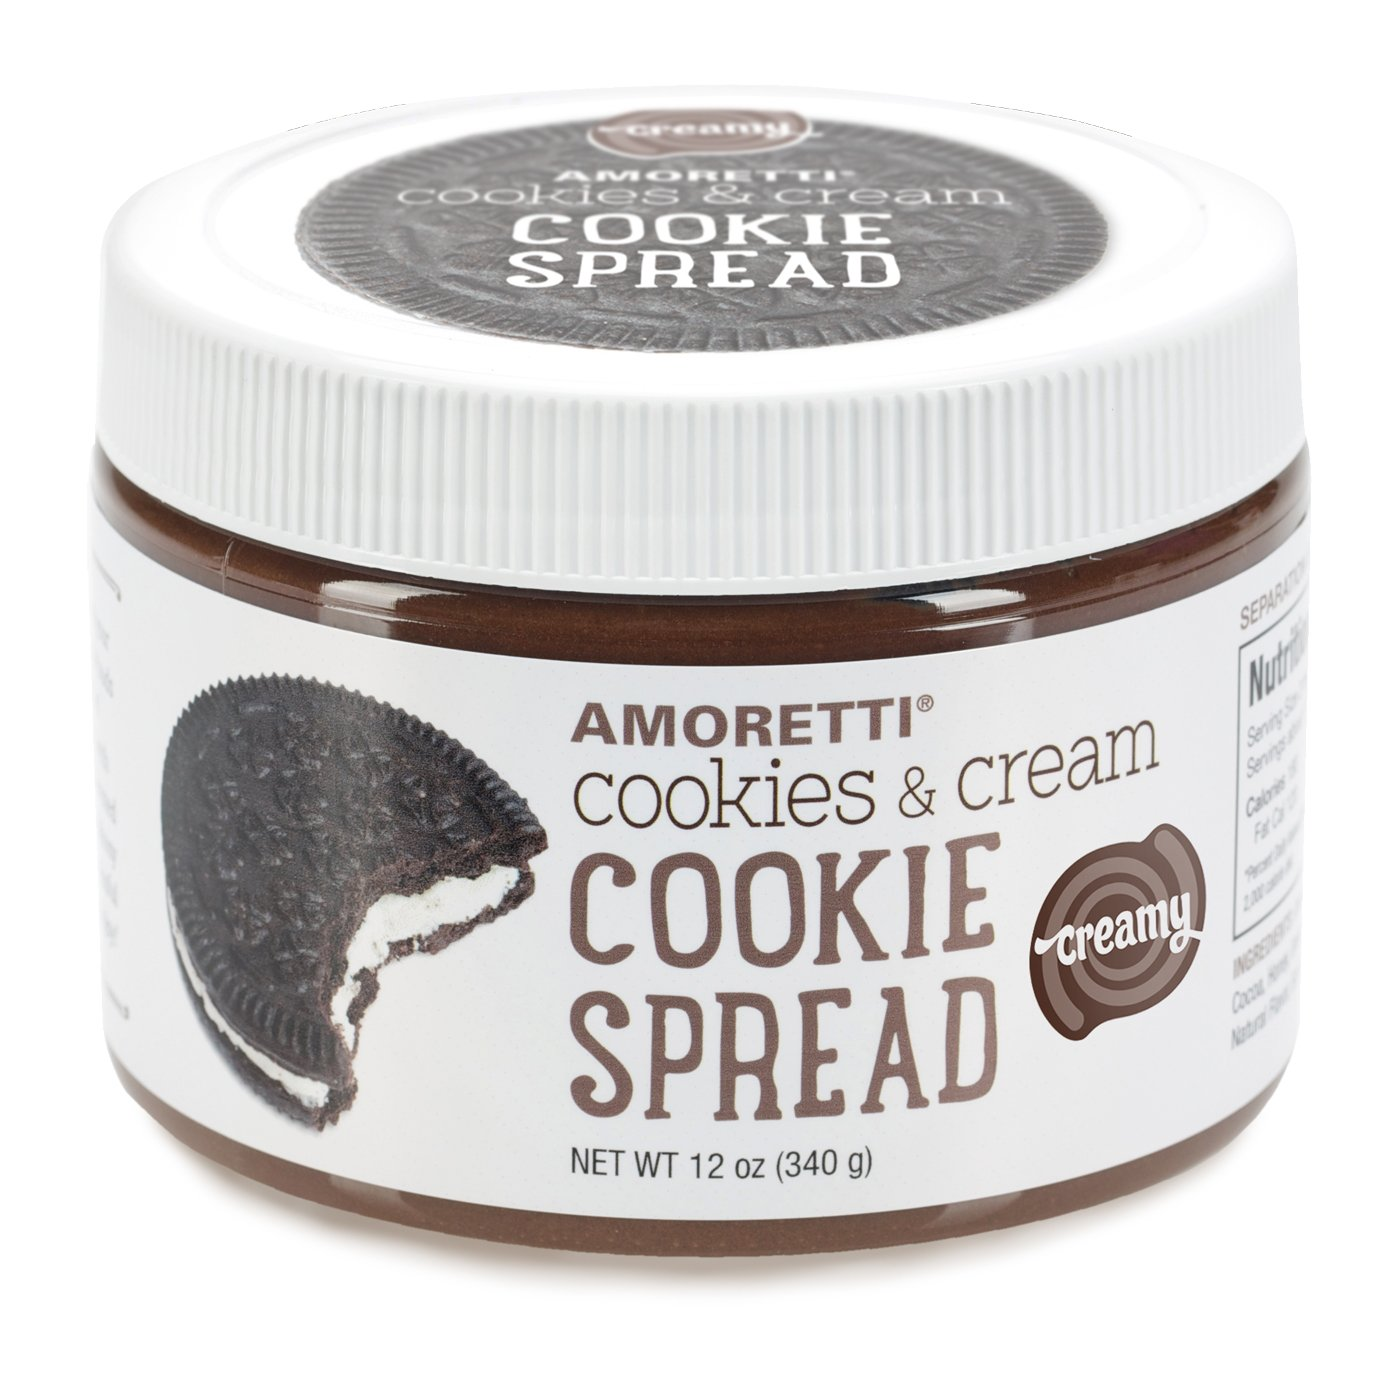 Amoretti Natural Creamy Cookies and Cream Cookie Spread, 12 Ounce